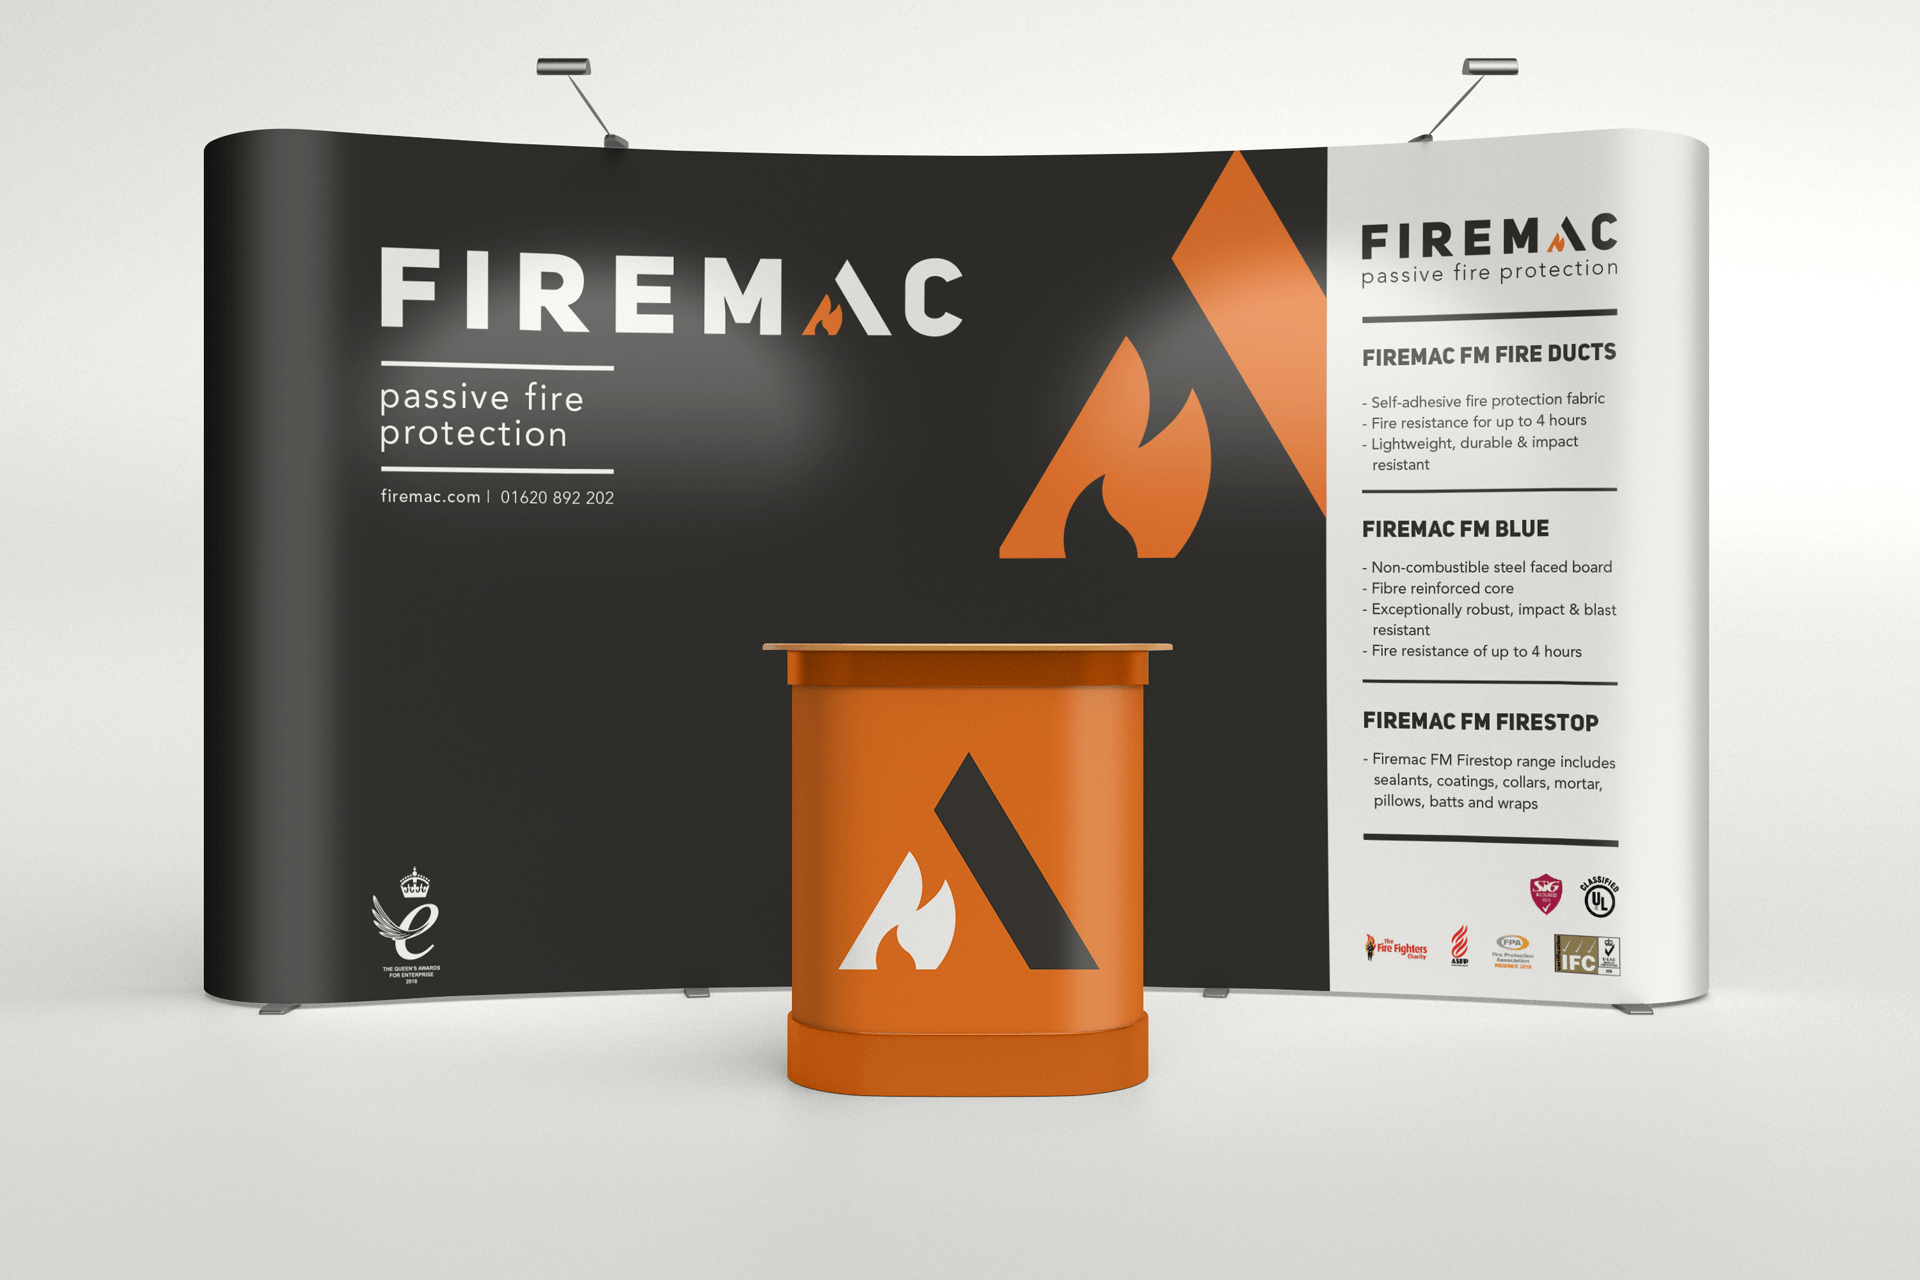 Firemac fire protection banner